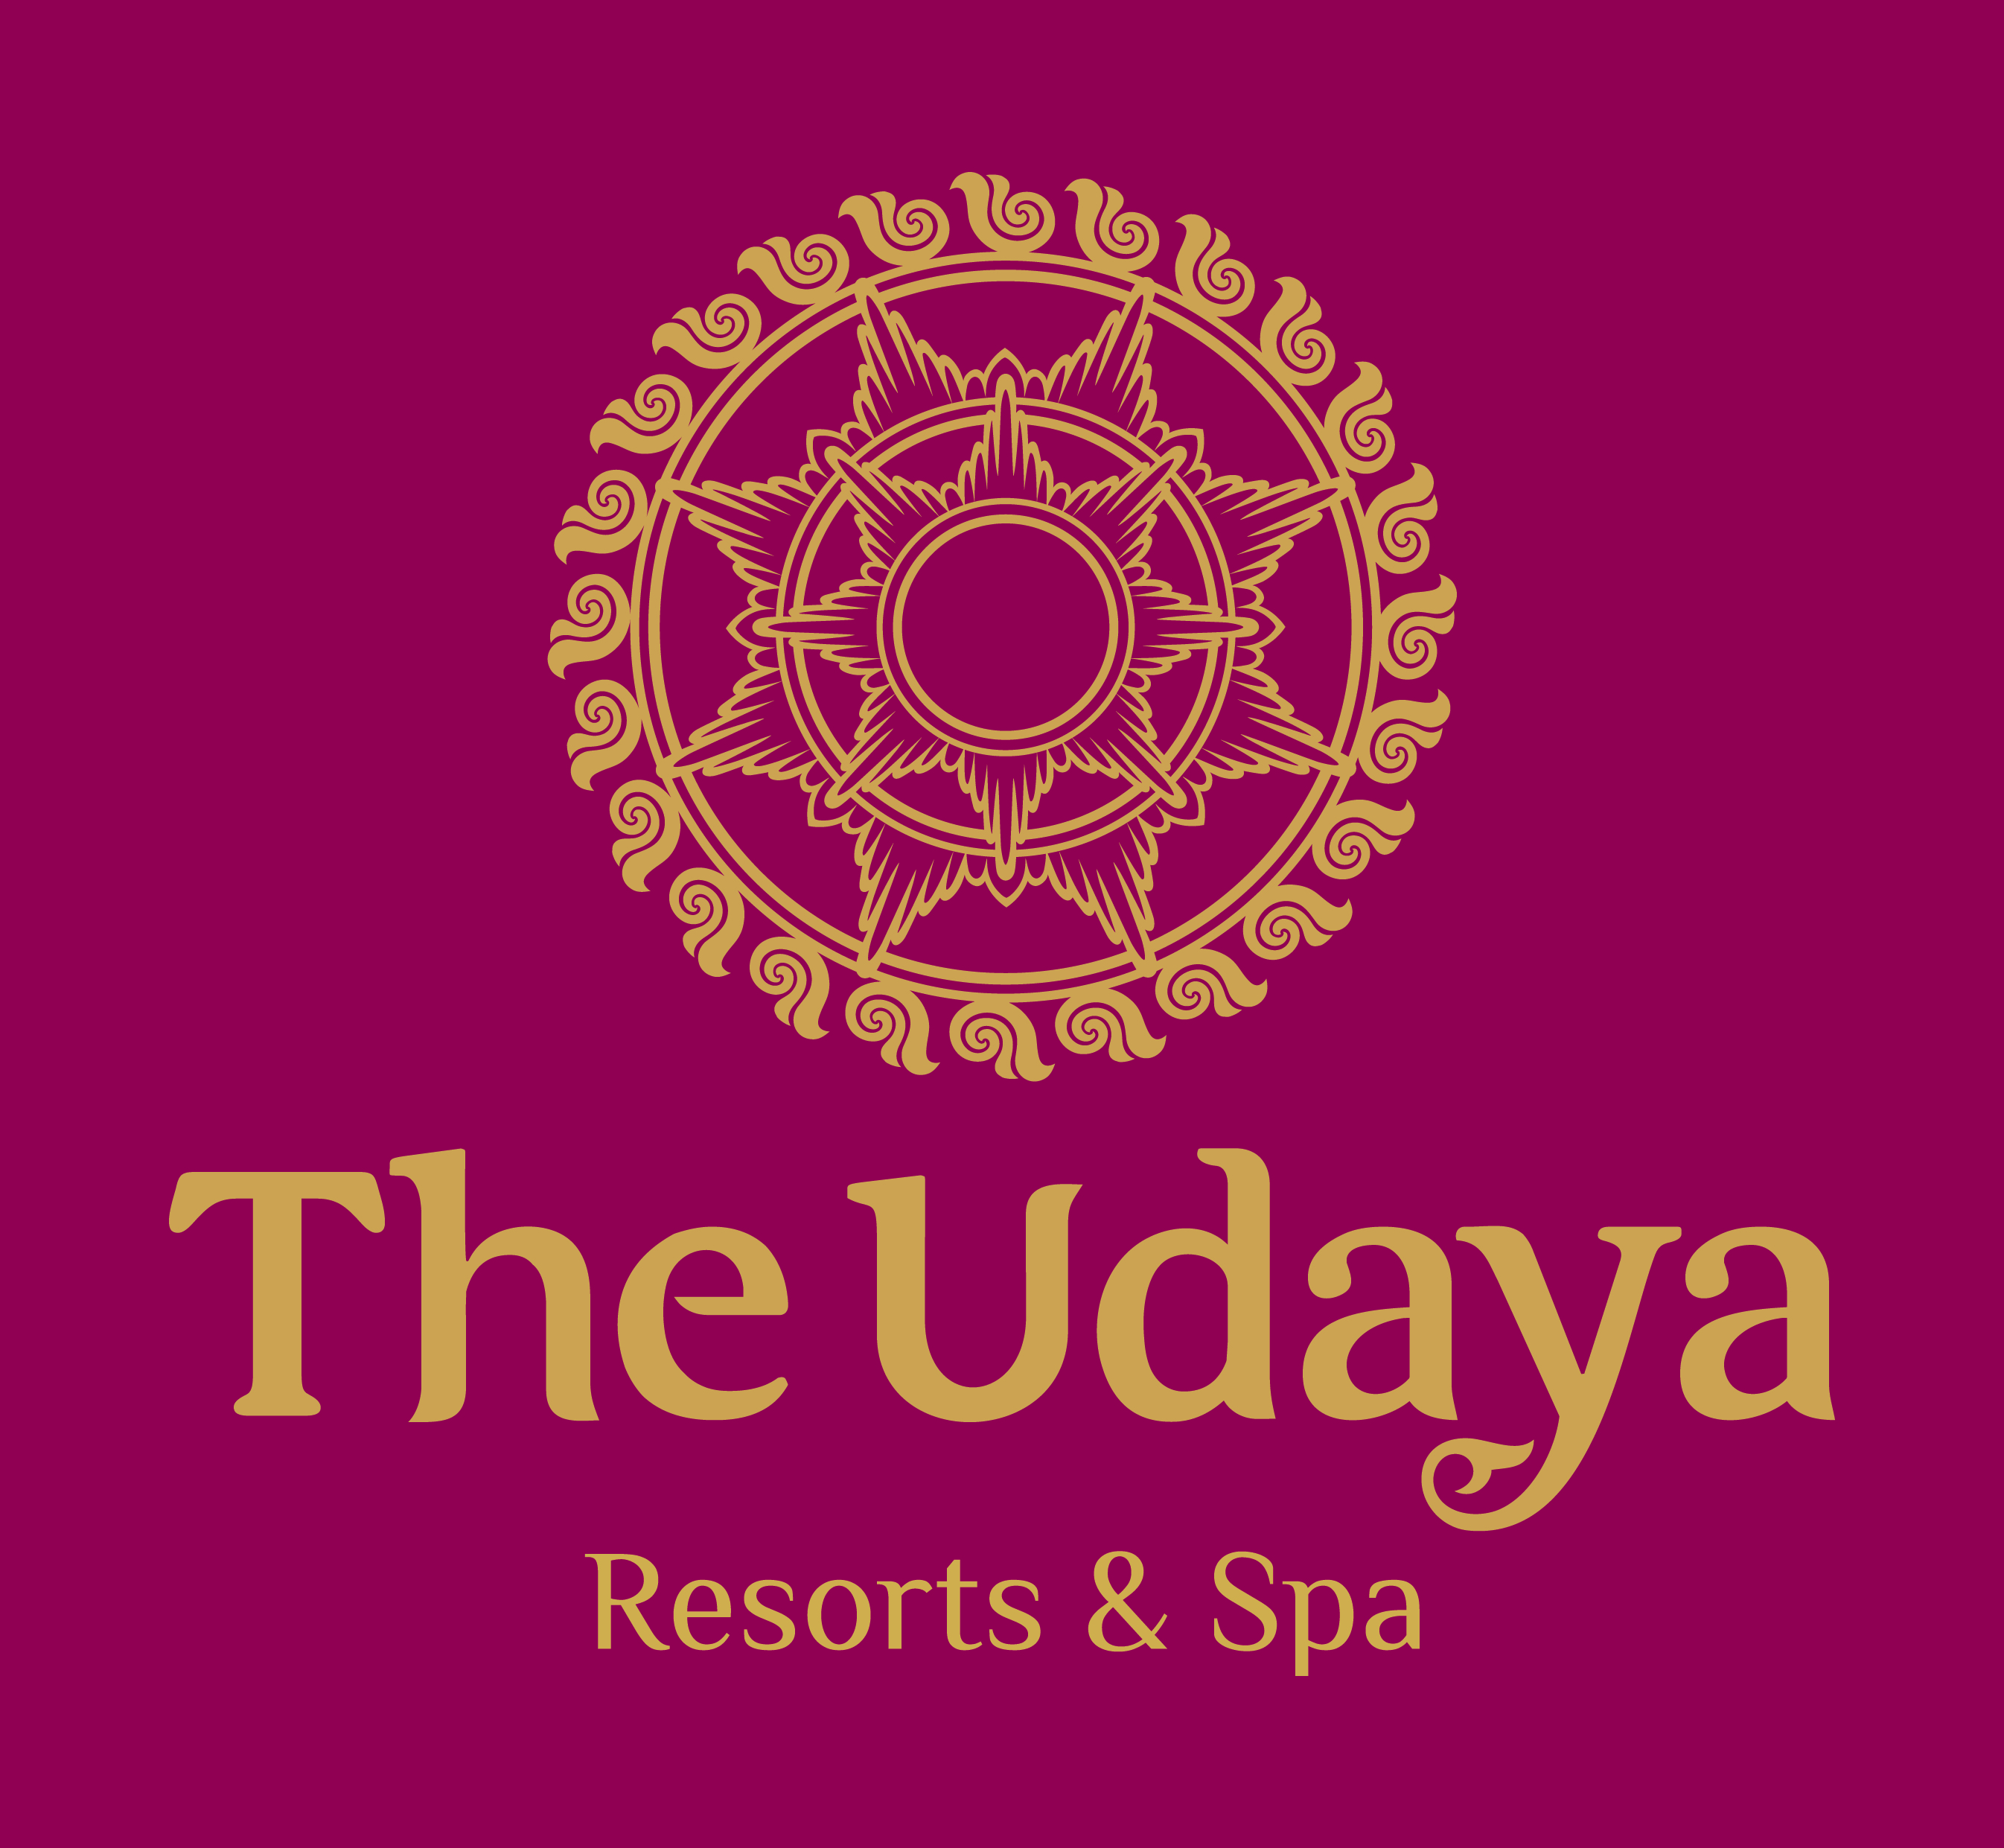 The Udaya Resort & Spa